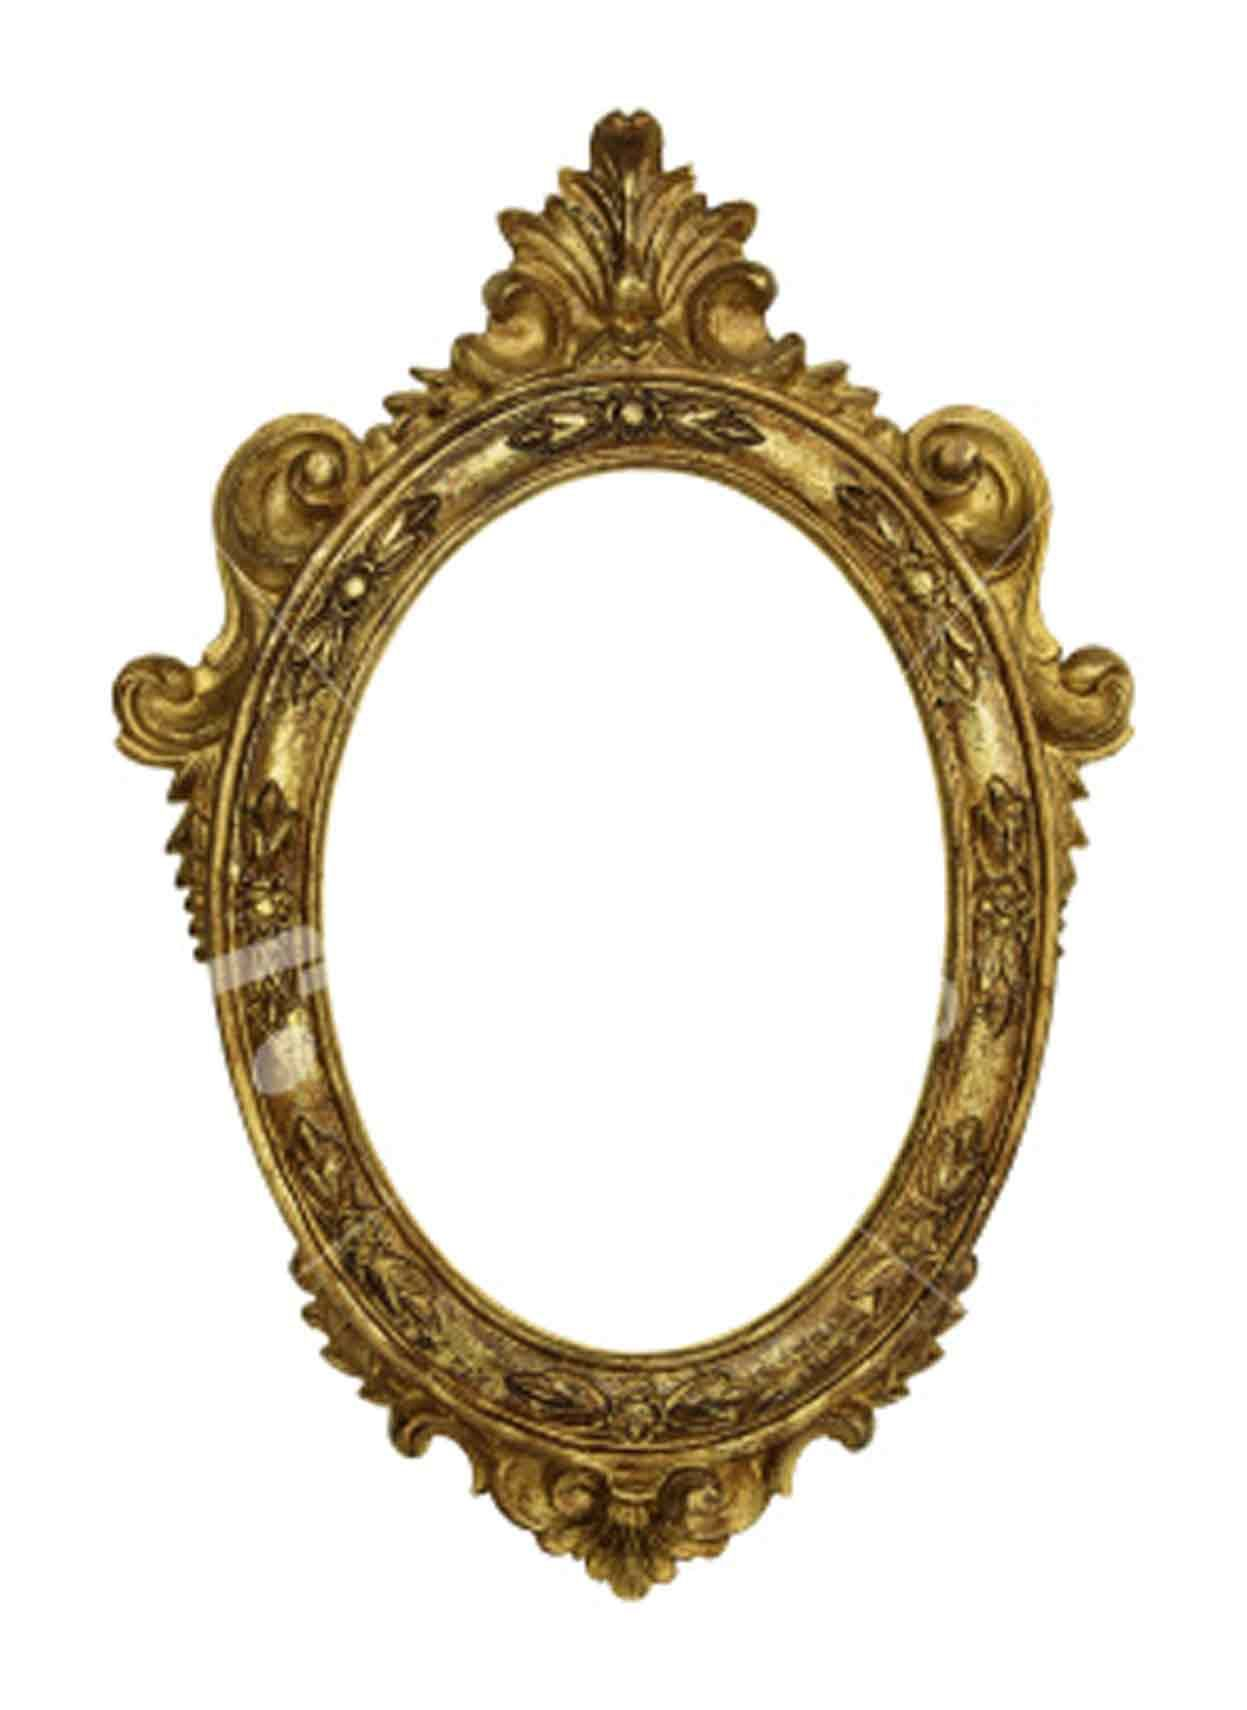 old fashioned gold frame ornate gold frame old picture framejpg